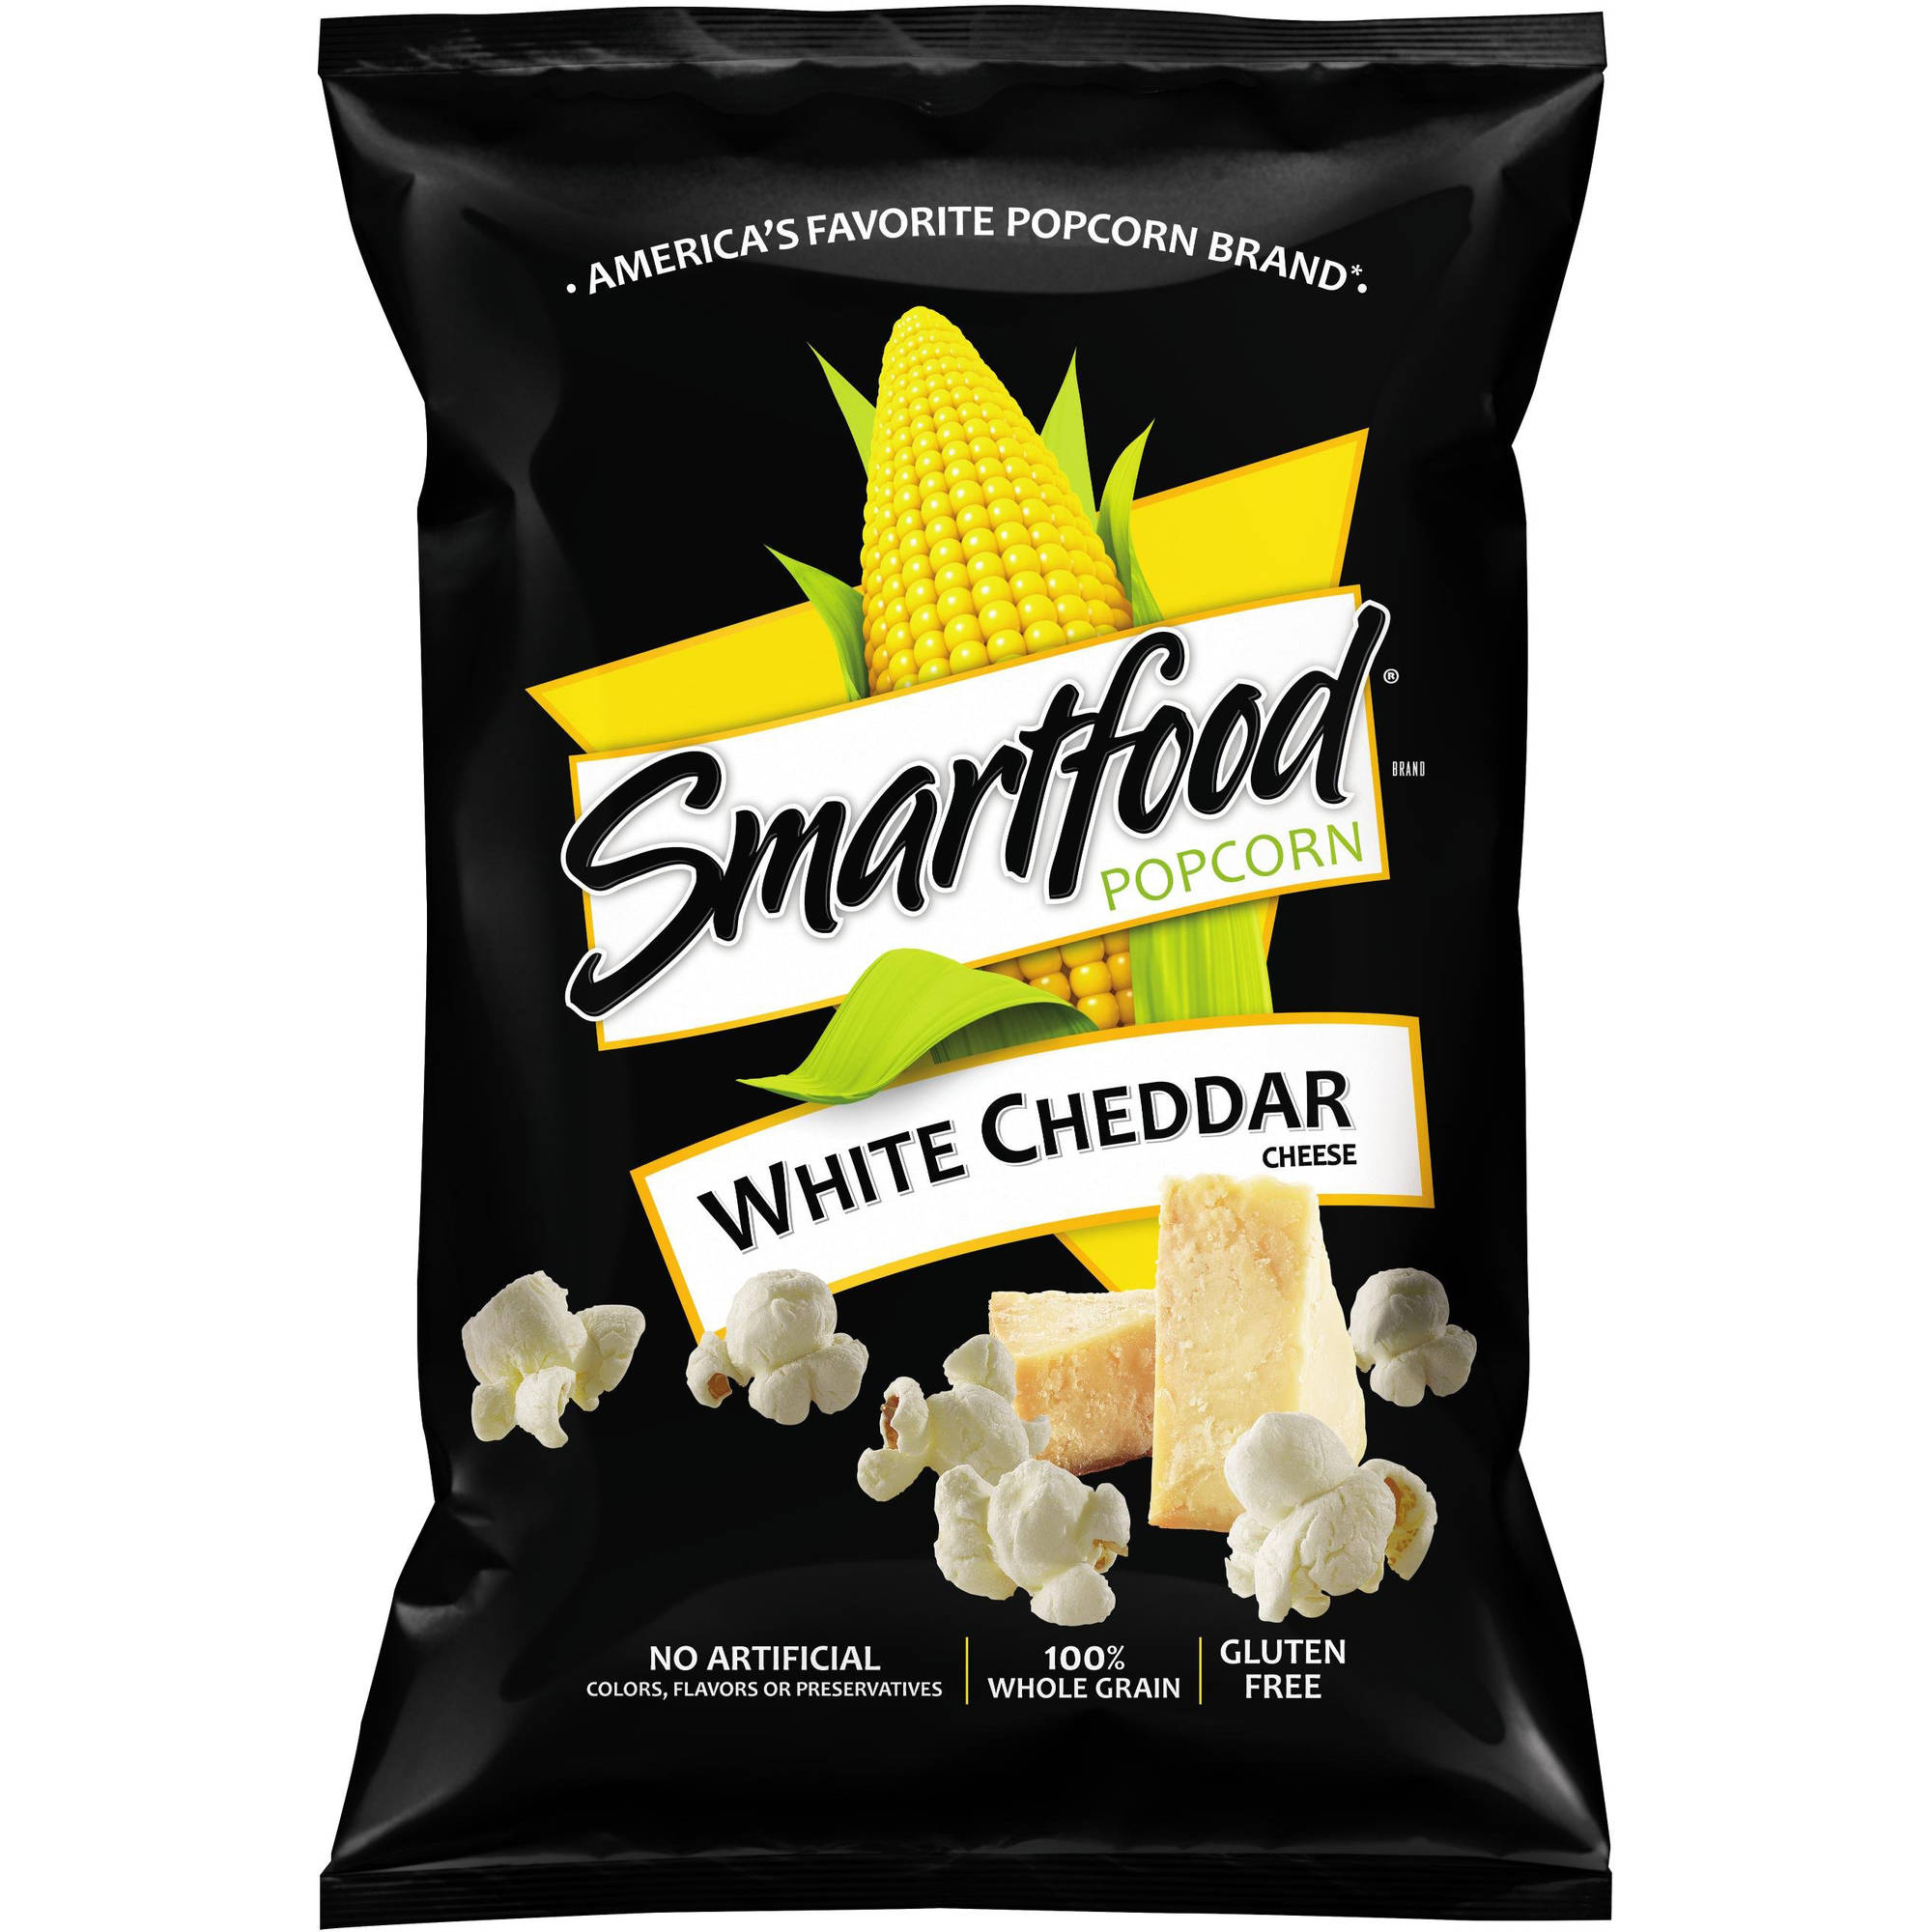 Smartfood White Cheddar Cheese Flavored Popcorn, 9 oz.